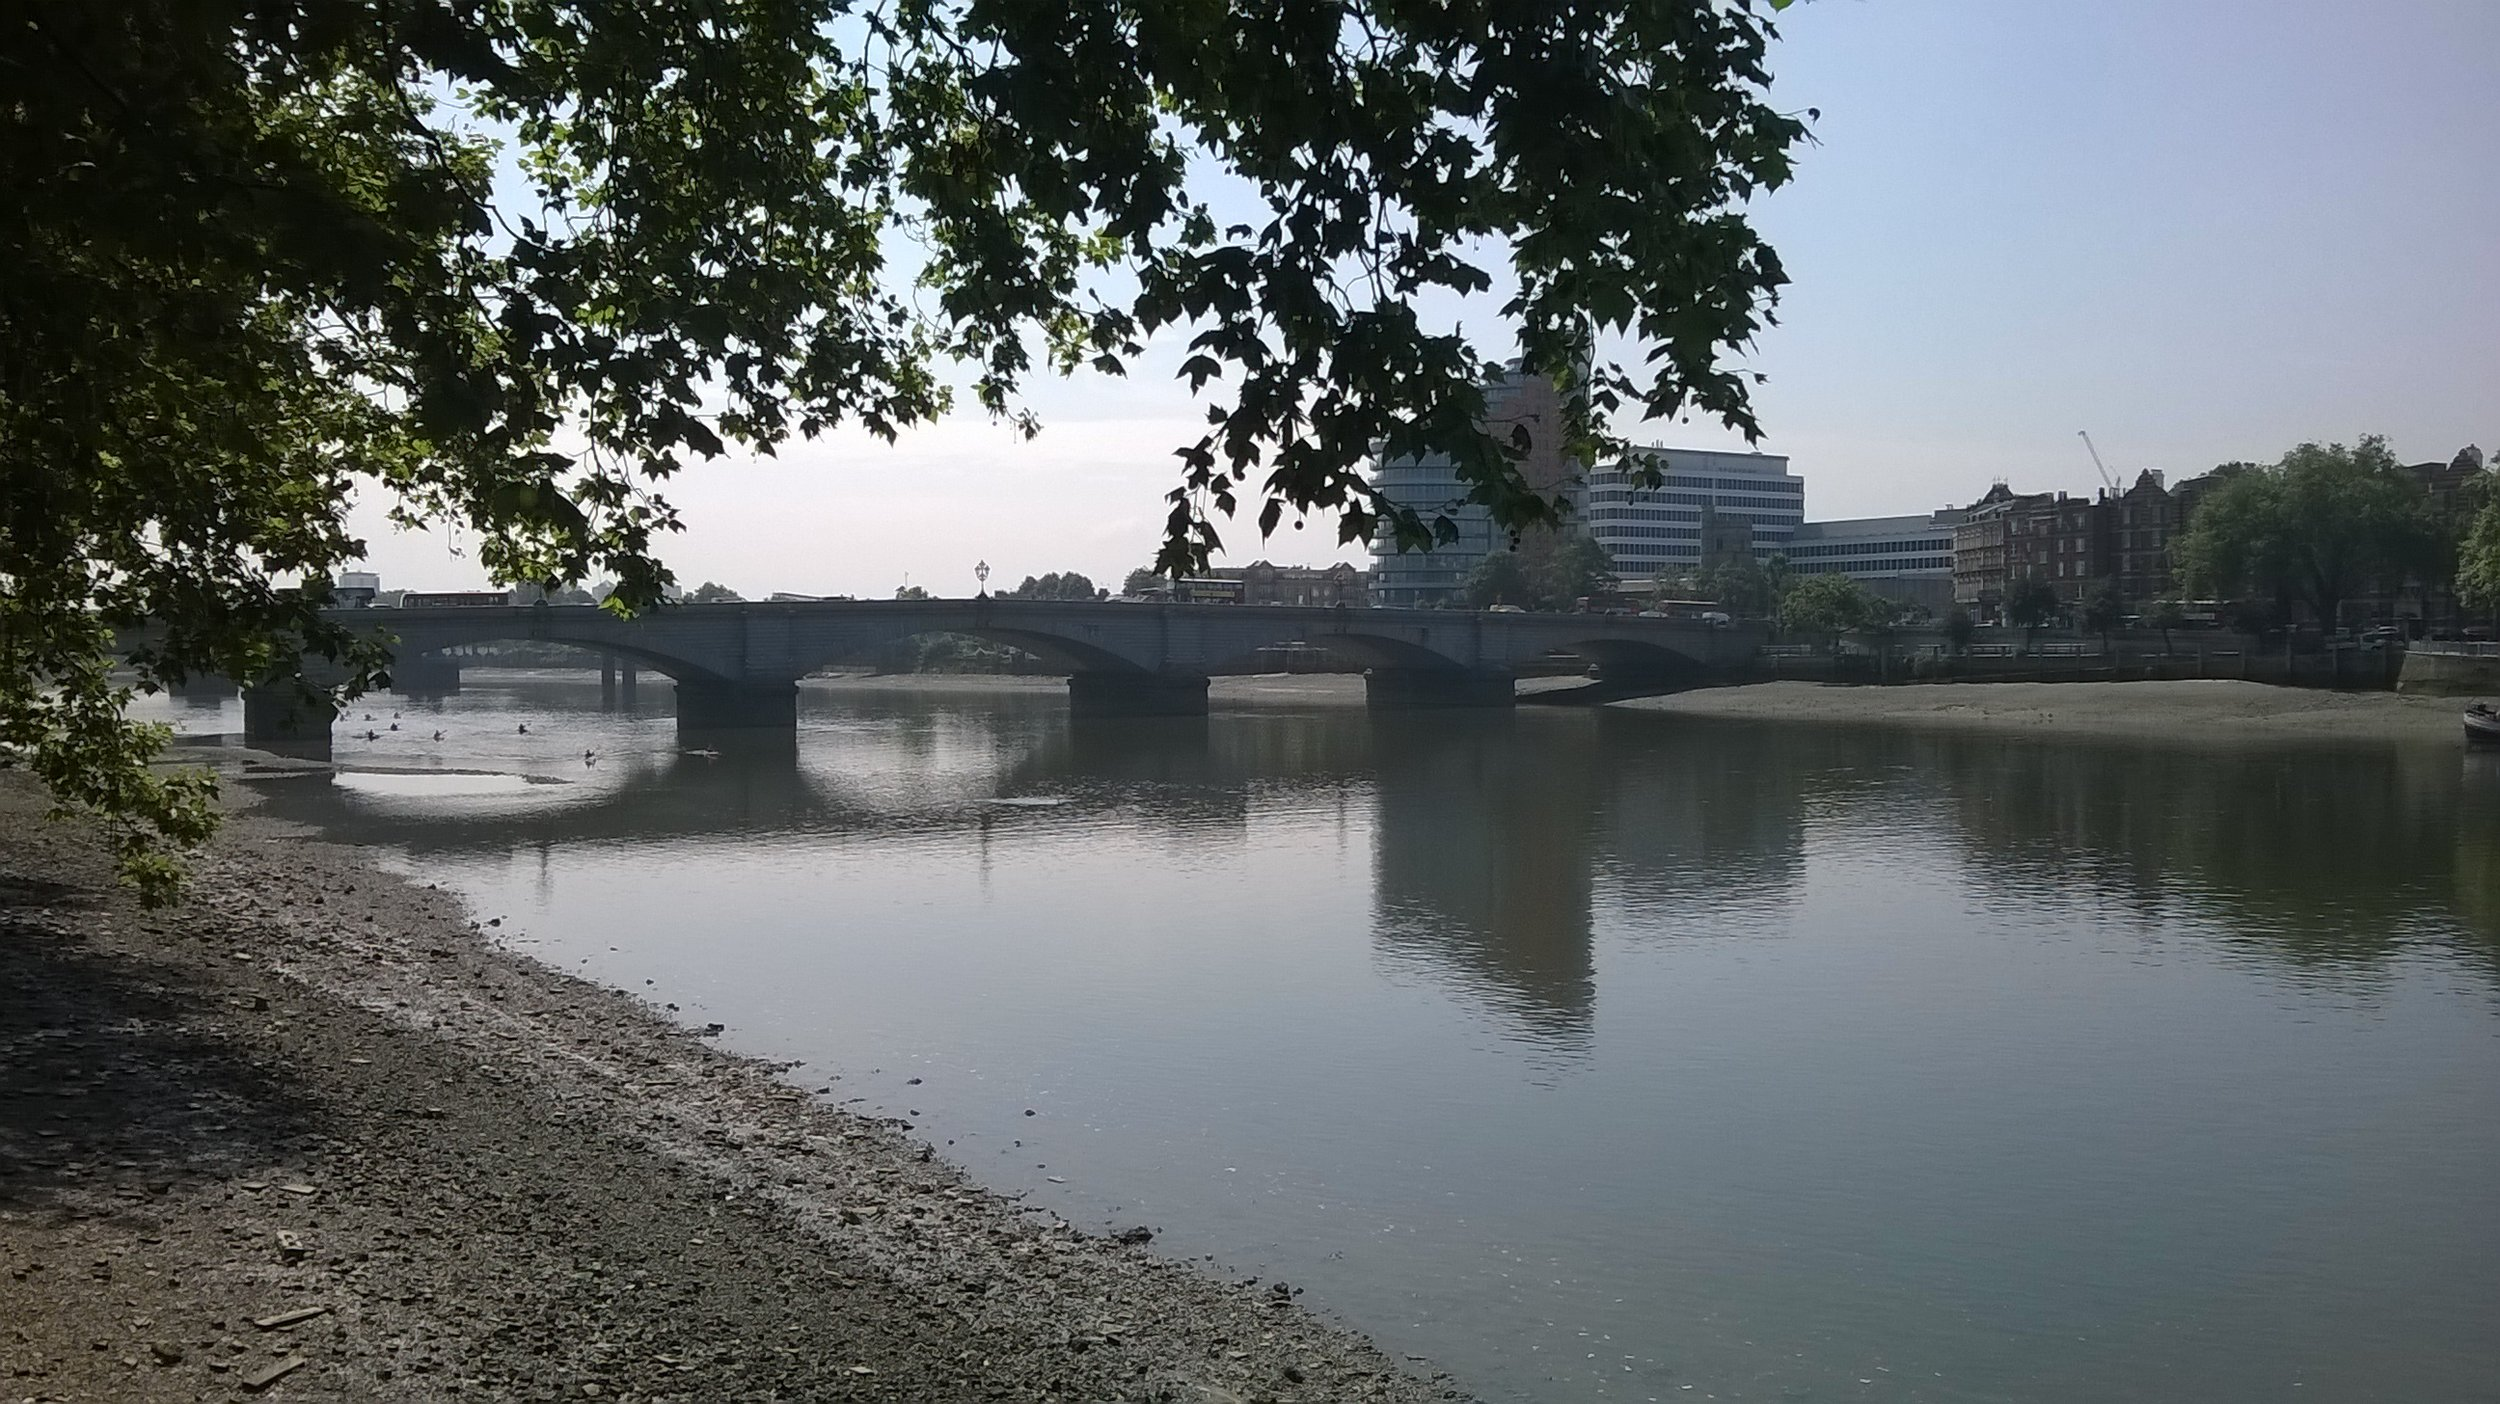 Walking to Putney Bridge, where I did most of my soul searching. Always a relief to see the murky Thames.